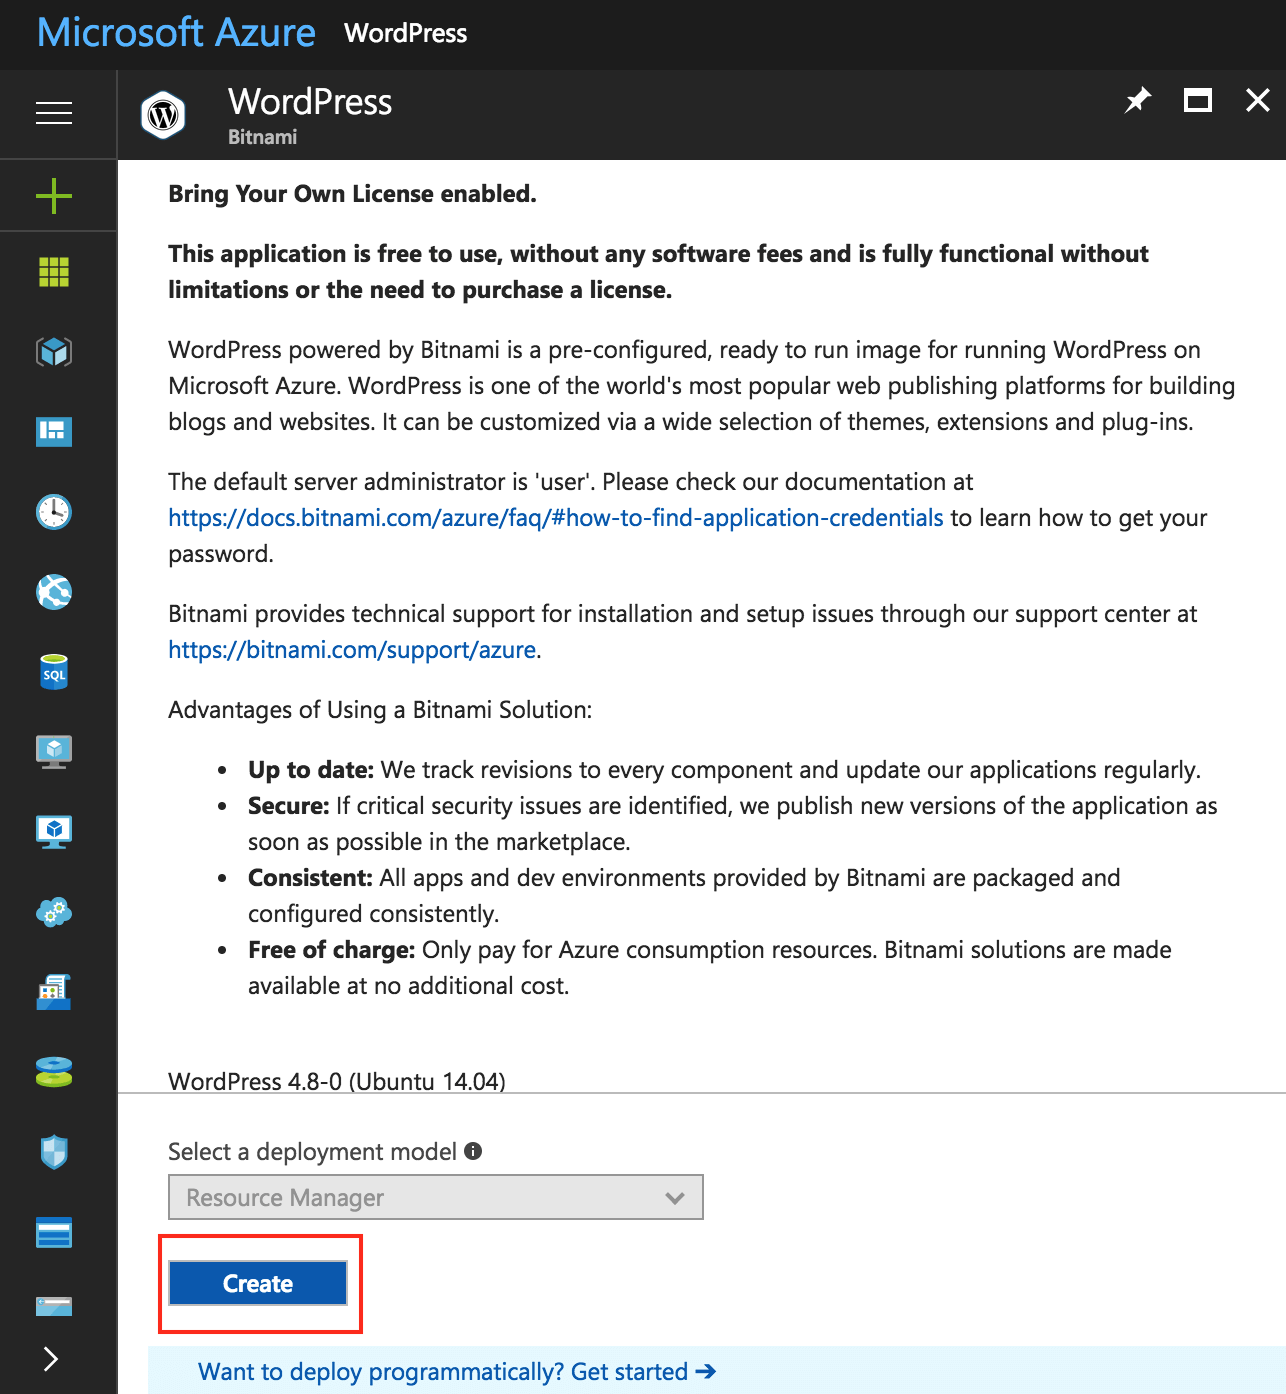 Create a new Azure virtual machine